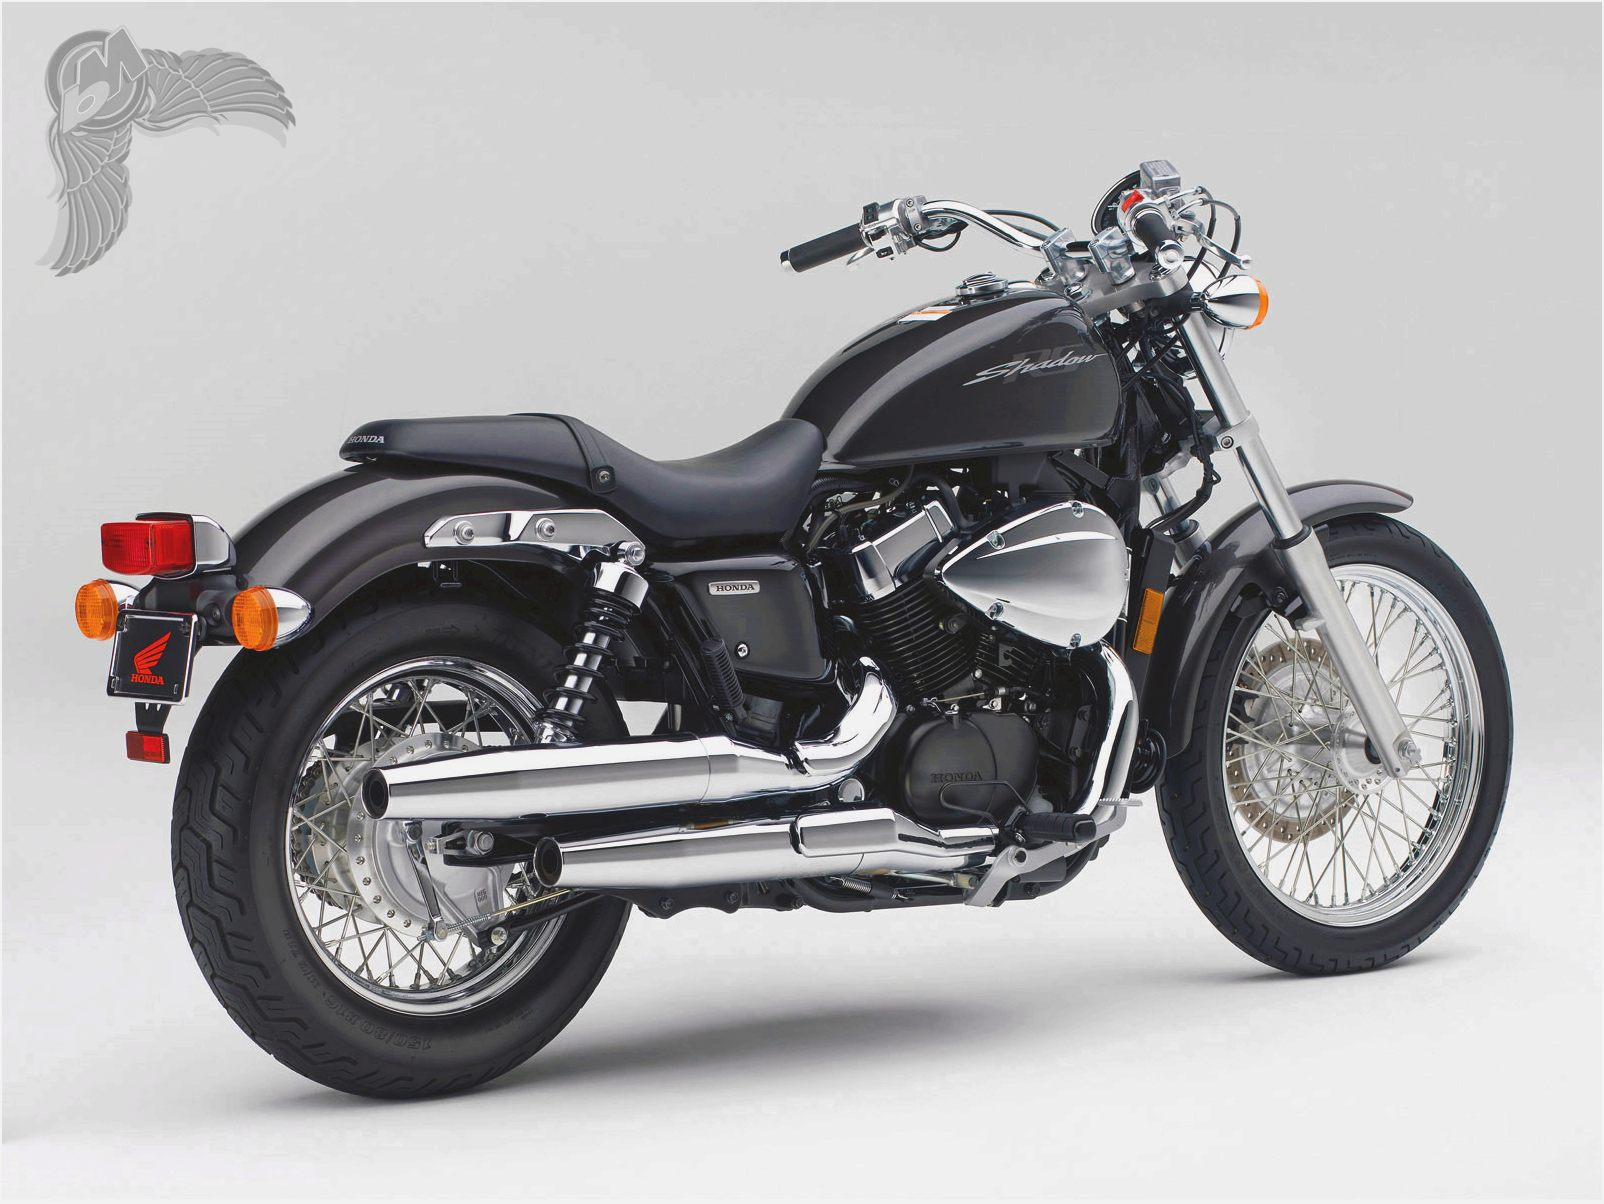 2008 honda vt 750 c pics specs and information. Black Bedroom Furniture Sets. Home Design Ideas